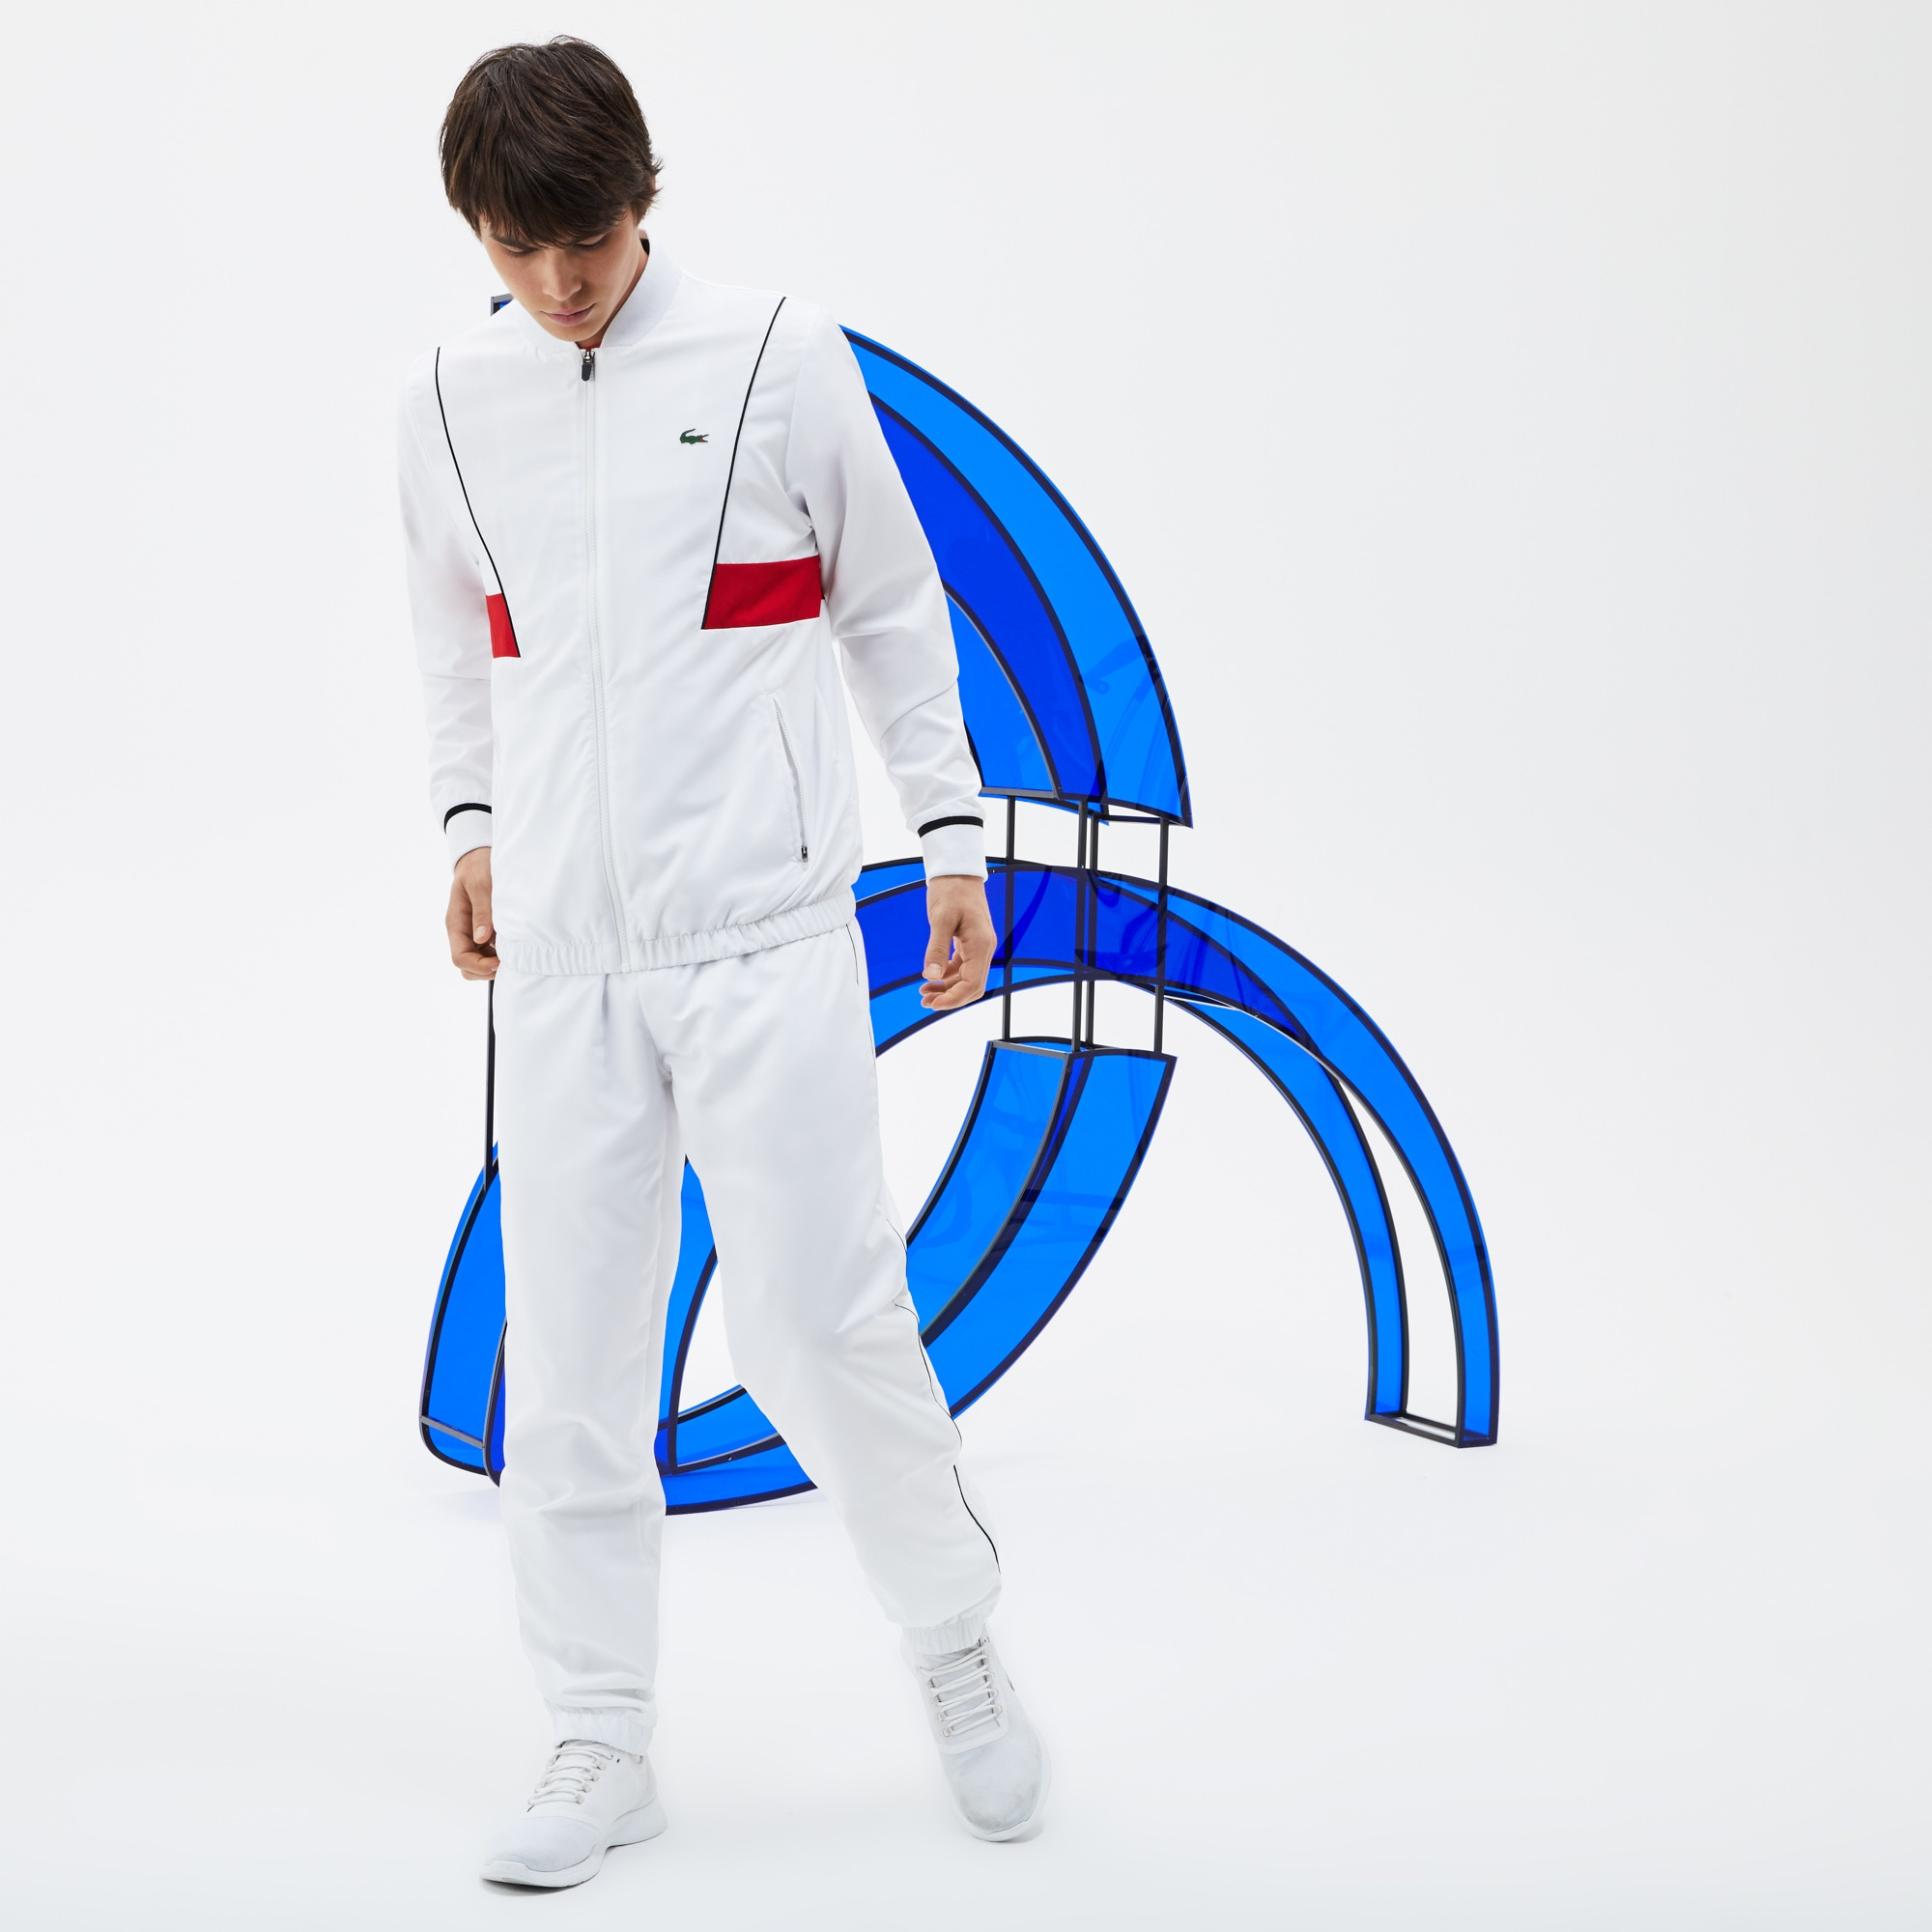 Conjunto de chándal LACOSTE SPORT COLLECTION NOVAK DJOKOVIC en tafetán